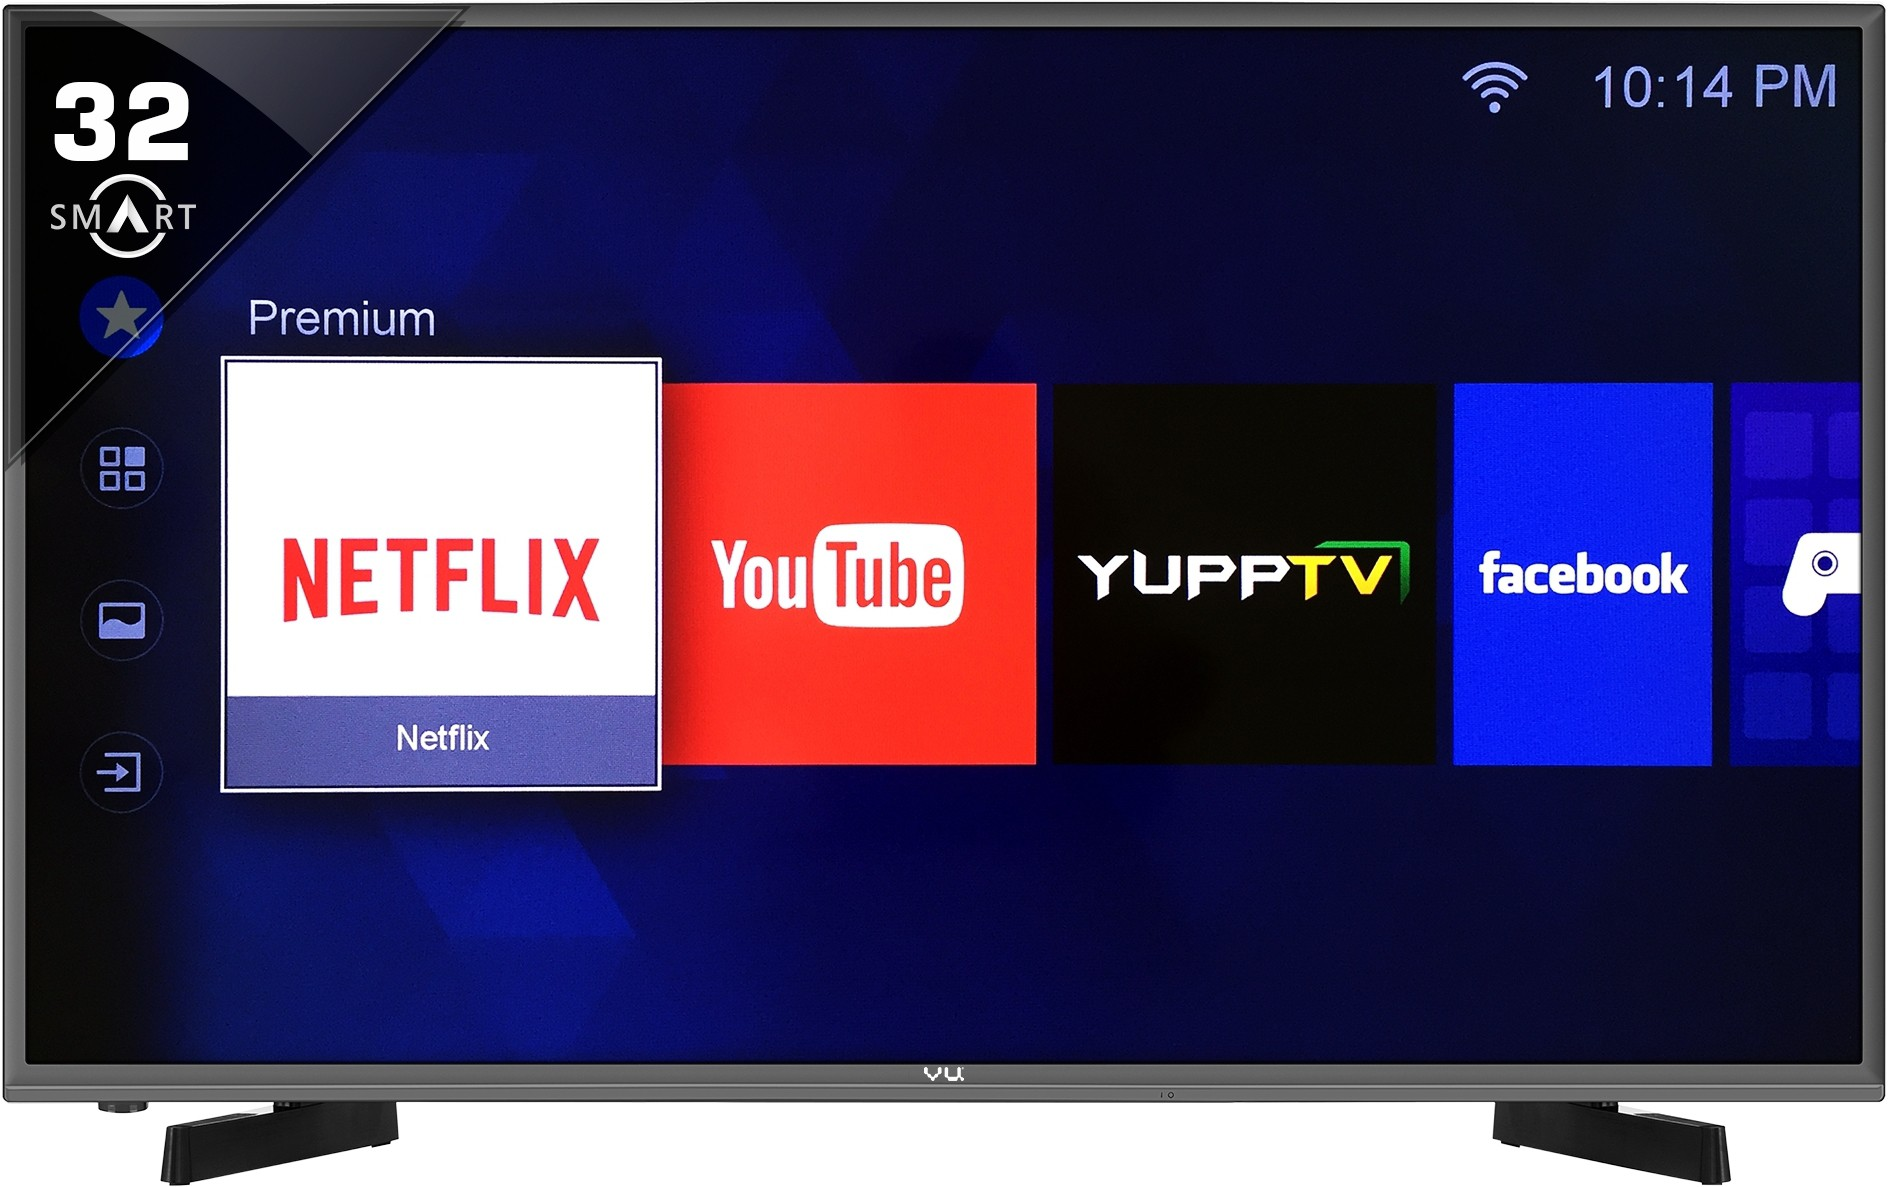 Deals | Up to 10% off Vu Smart TVs